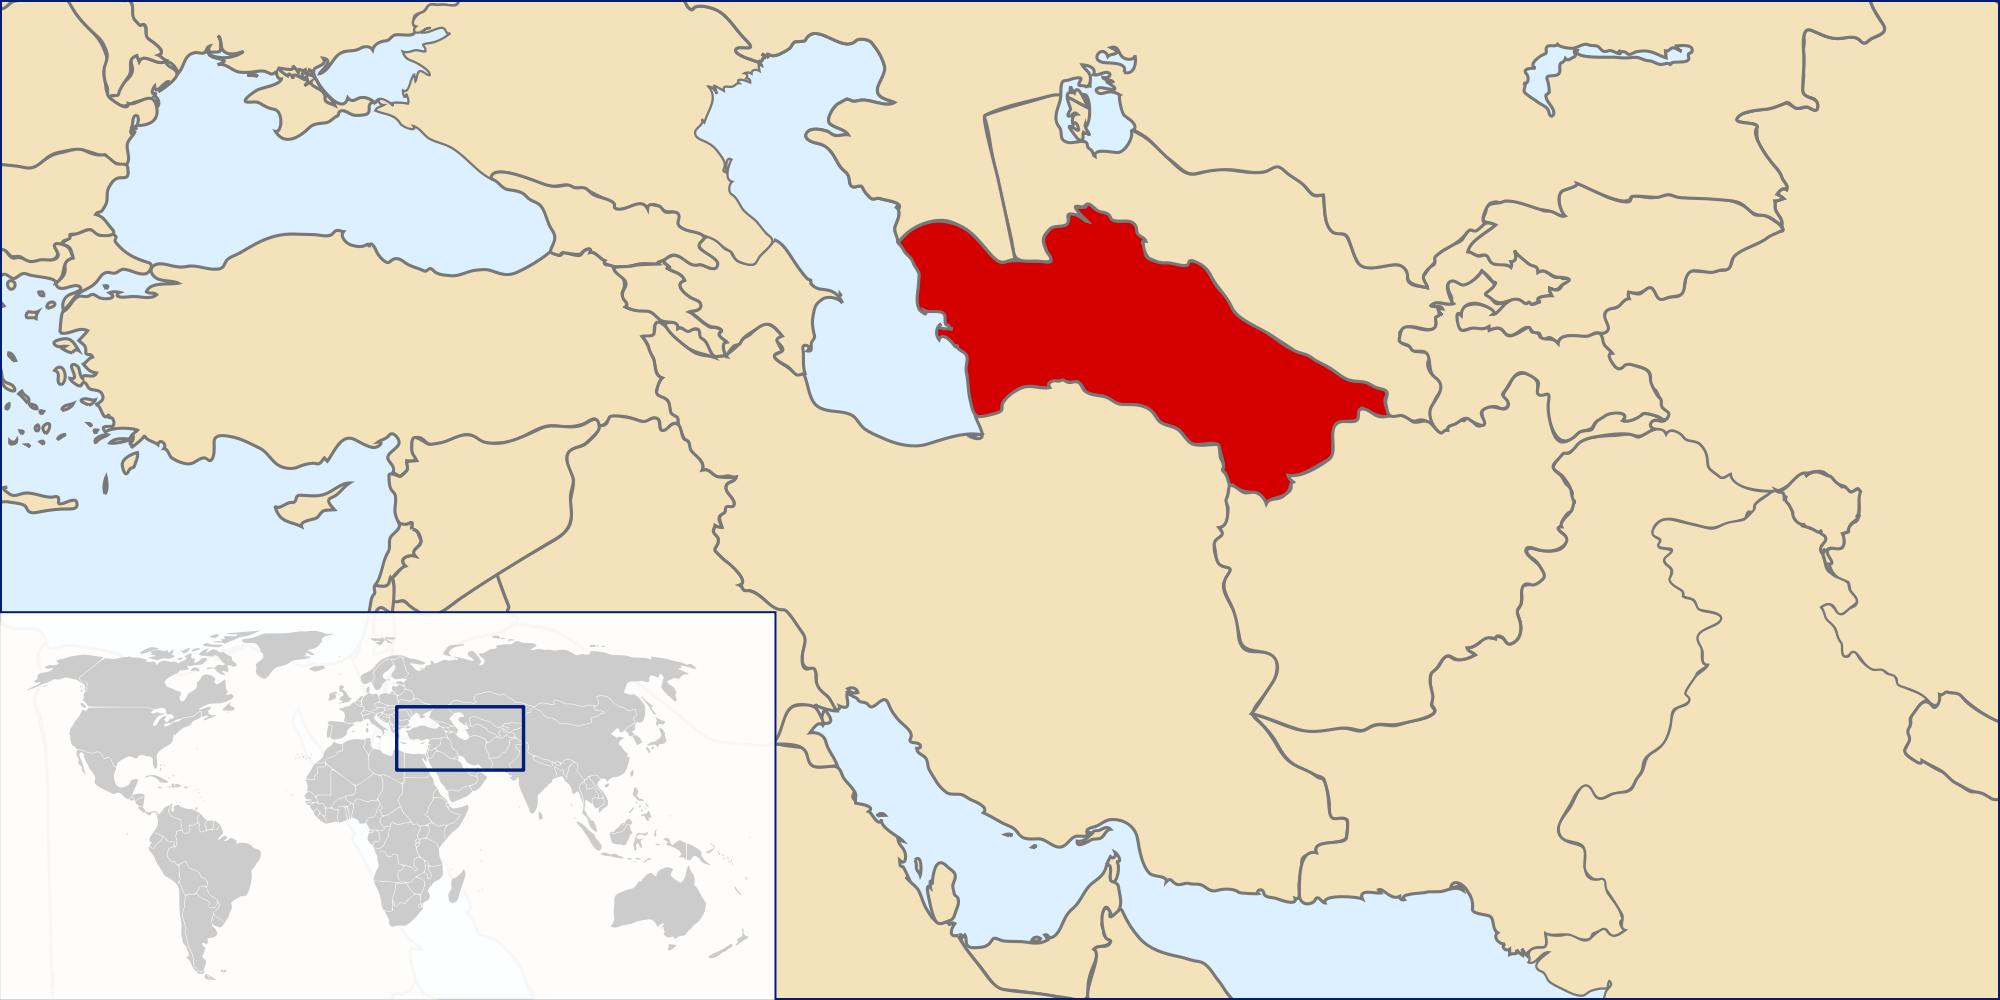 Location of the Turkmenistan in the World Map